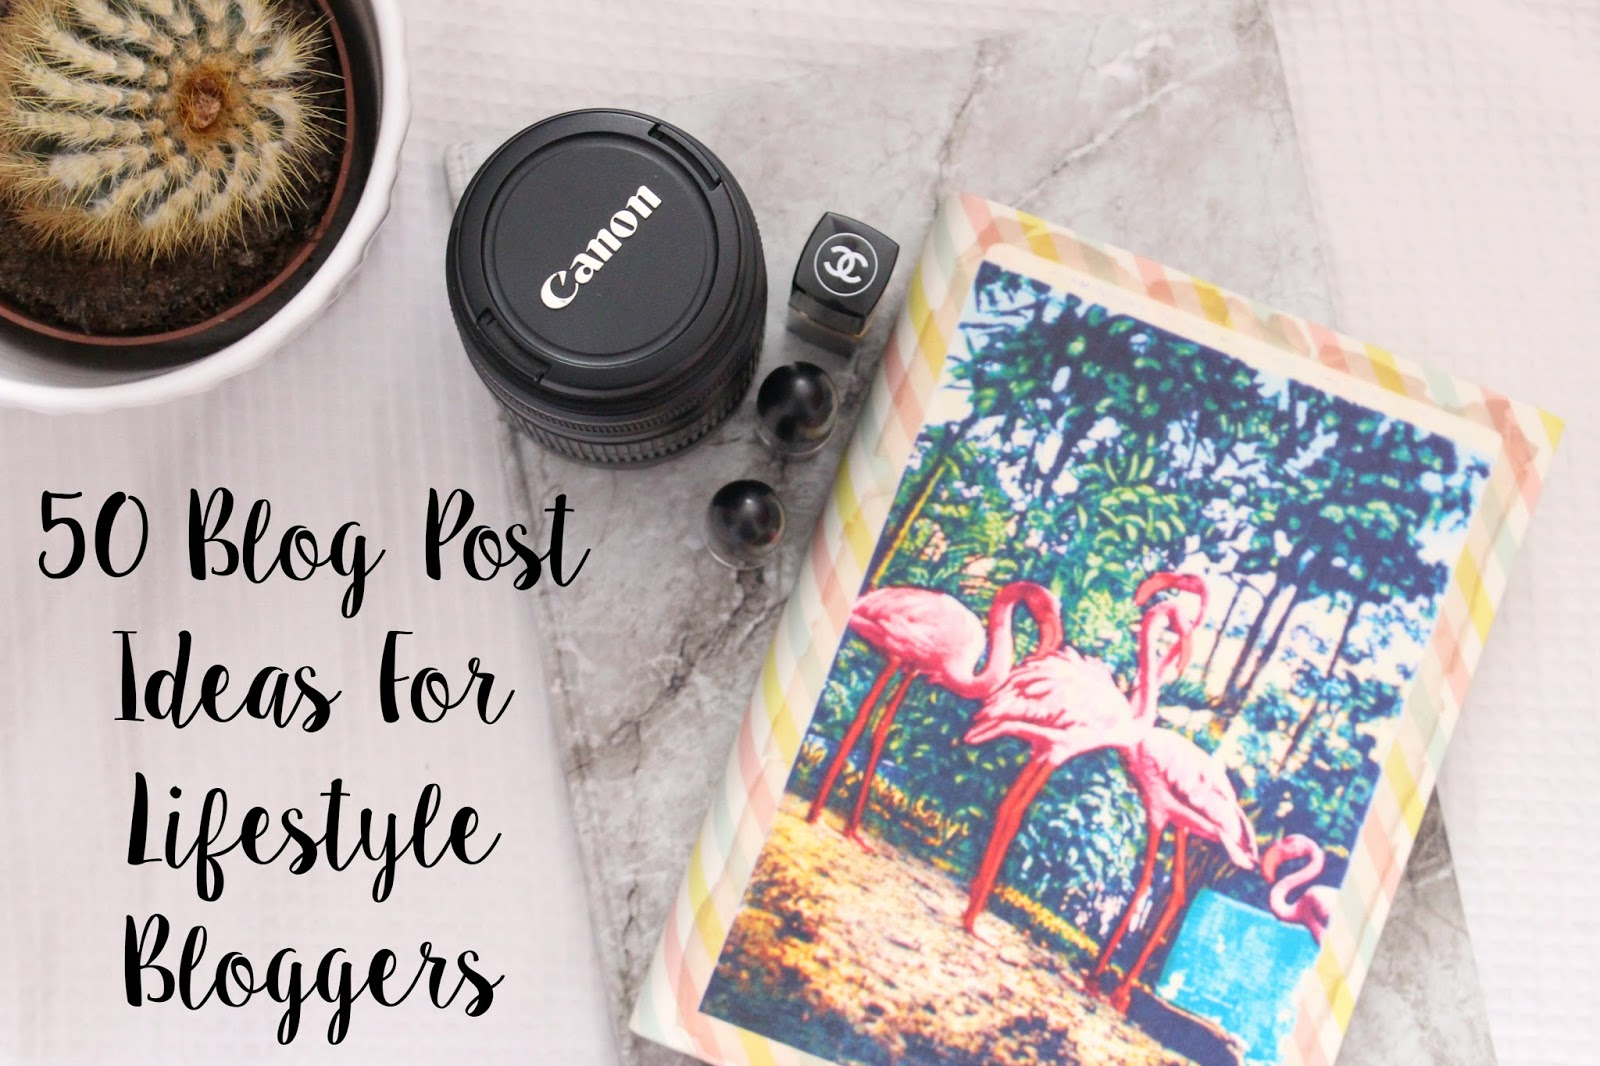 50 Blog Post Ideas For Lifestyle Bloggers | A Beautiful Chaos